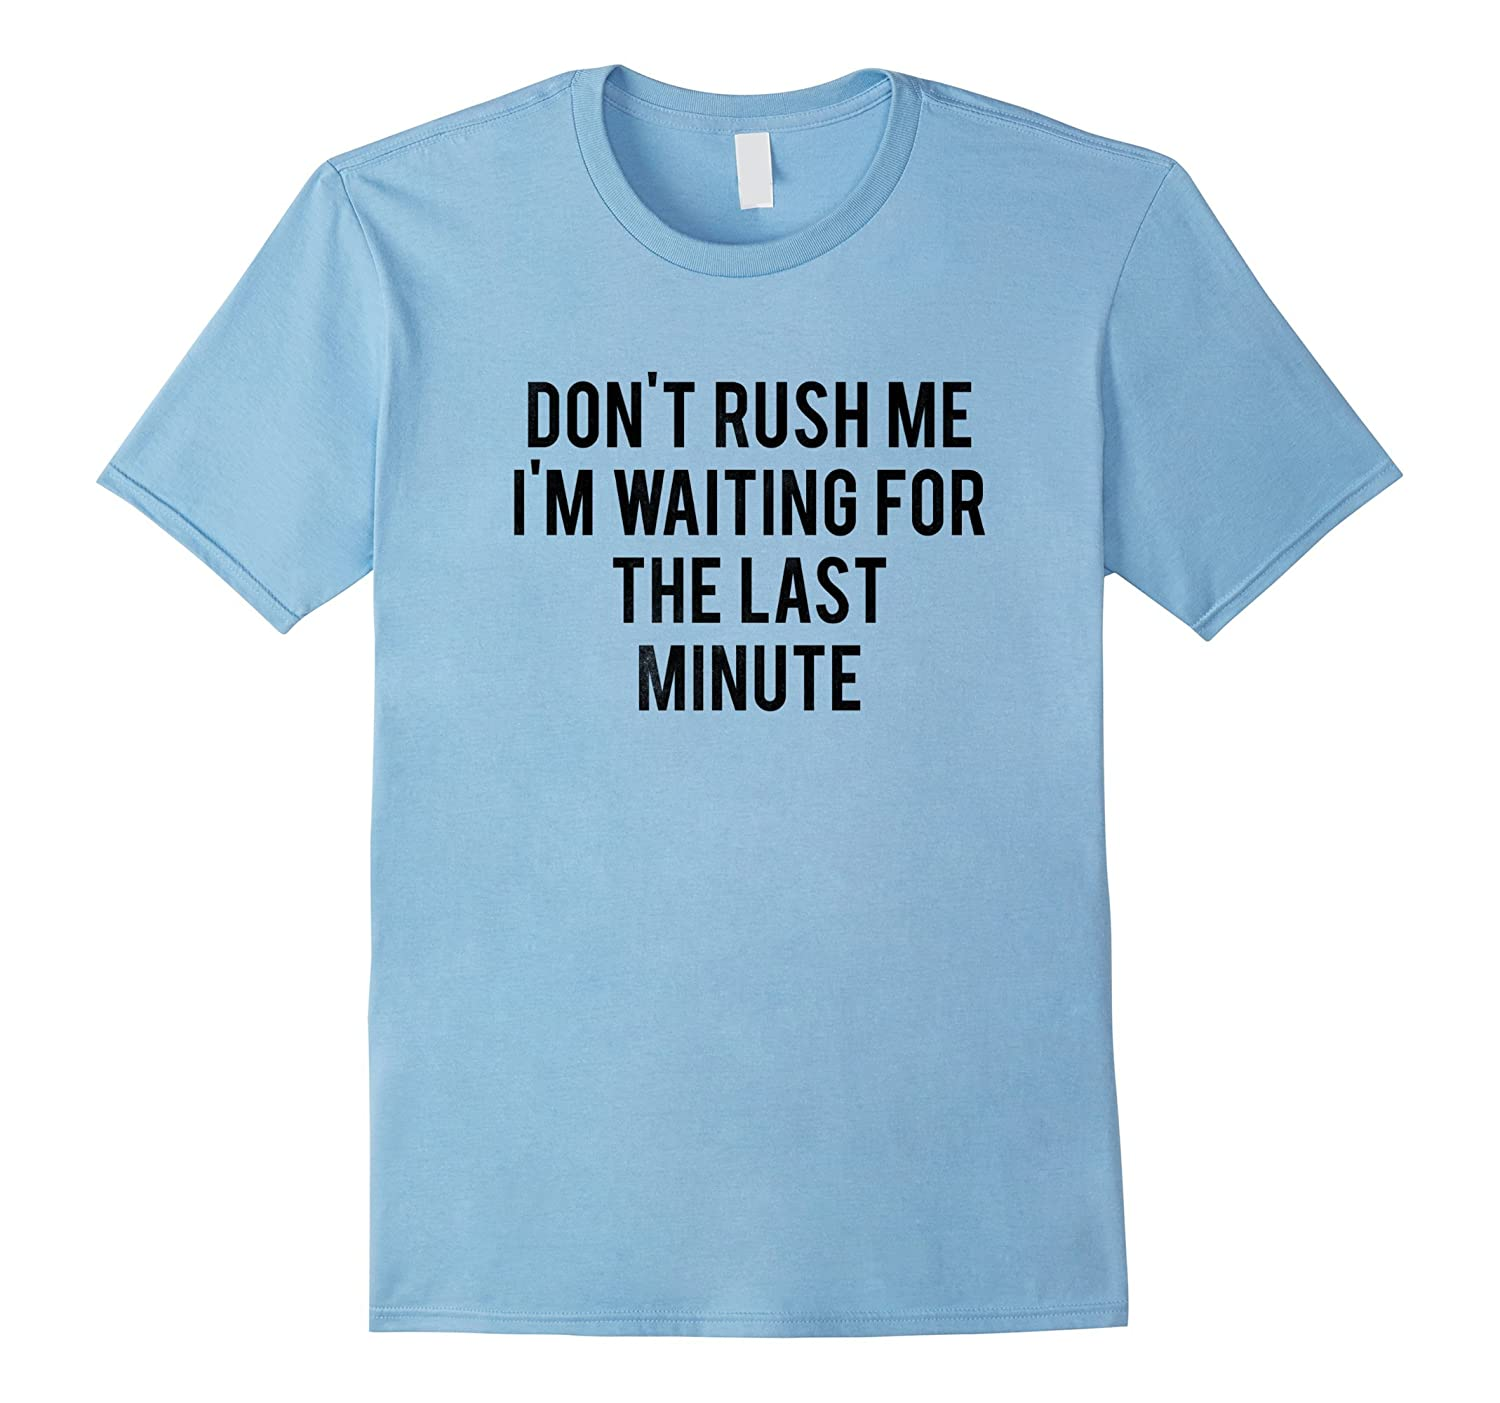 Don't rush me I'm waiting for the last minute  Funny Tee